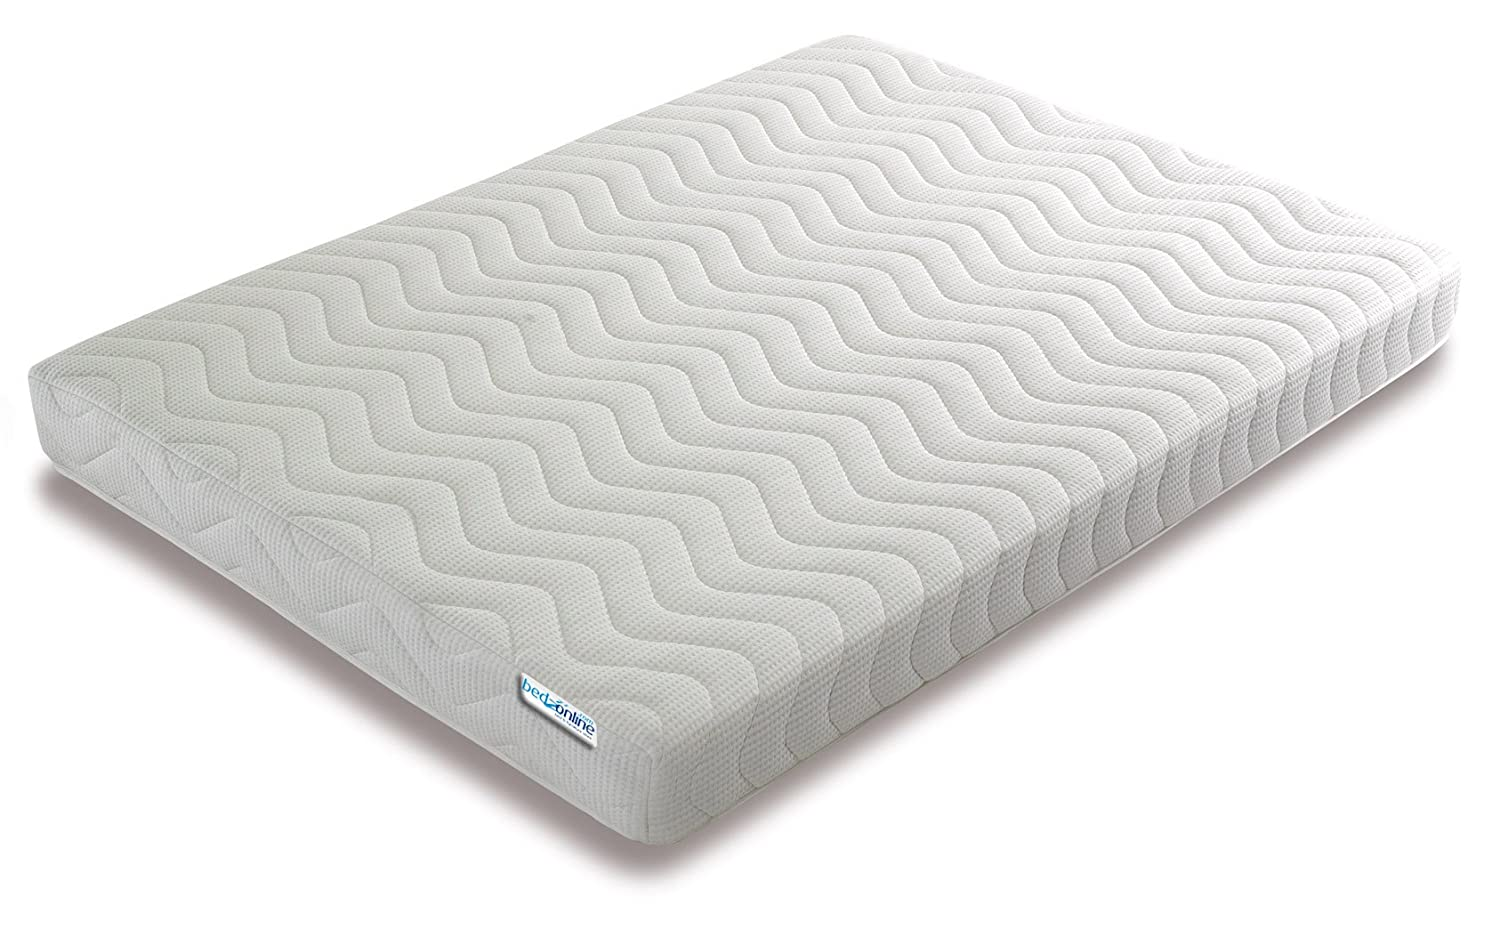 bedzonline Black Friday Memory Foam and Reflex 3 Zone Mattress with 2 Fibre Pillows Micro Quilted cool flex Cover, Double, 4 ft 6-inch, 135 x 190 cm PLATINUM ENTERPRISE UK LTD 46786MEMORY FOAM